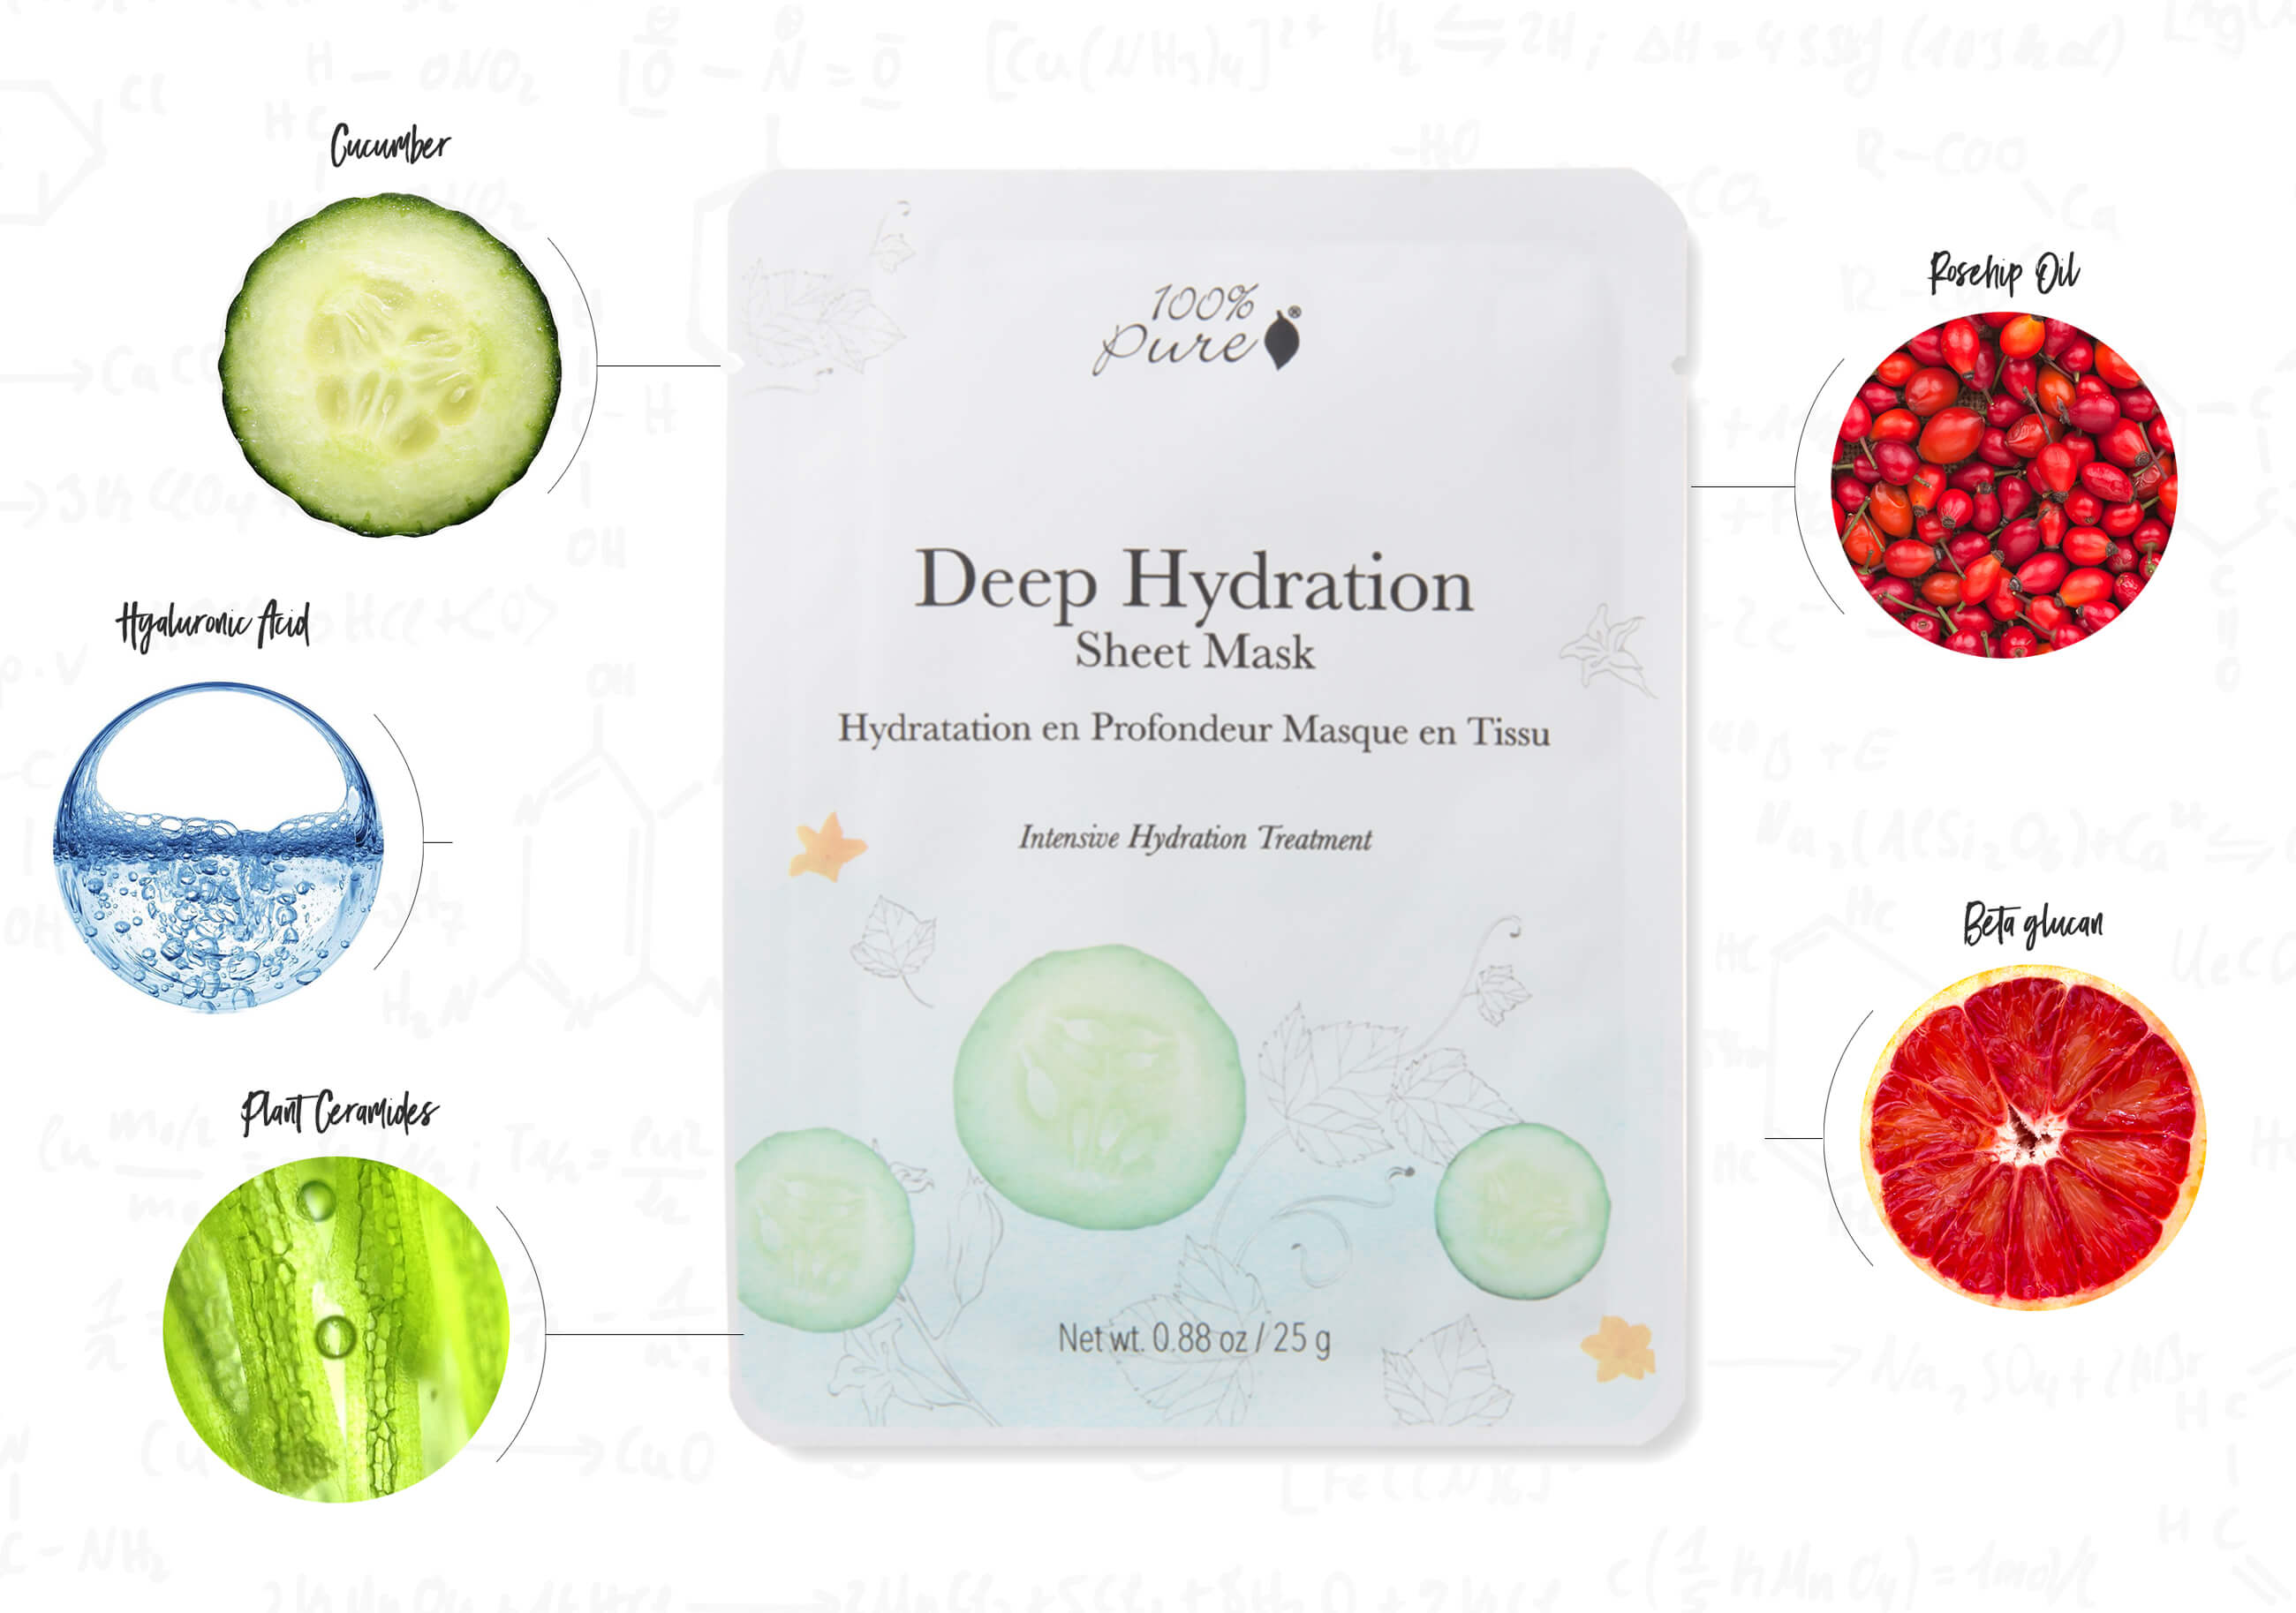 Deep Hydration Sheet Mask